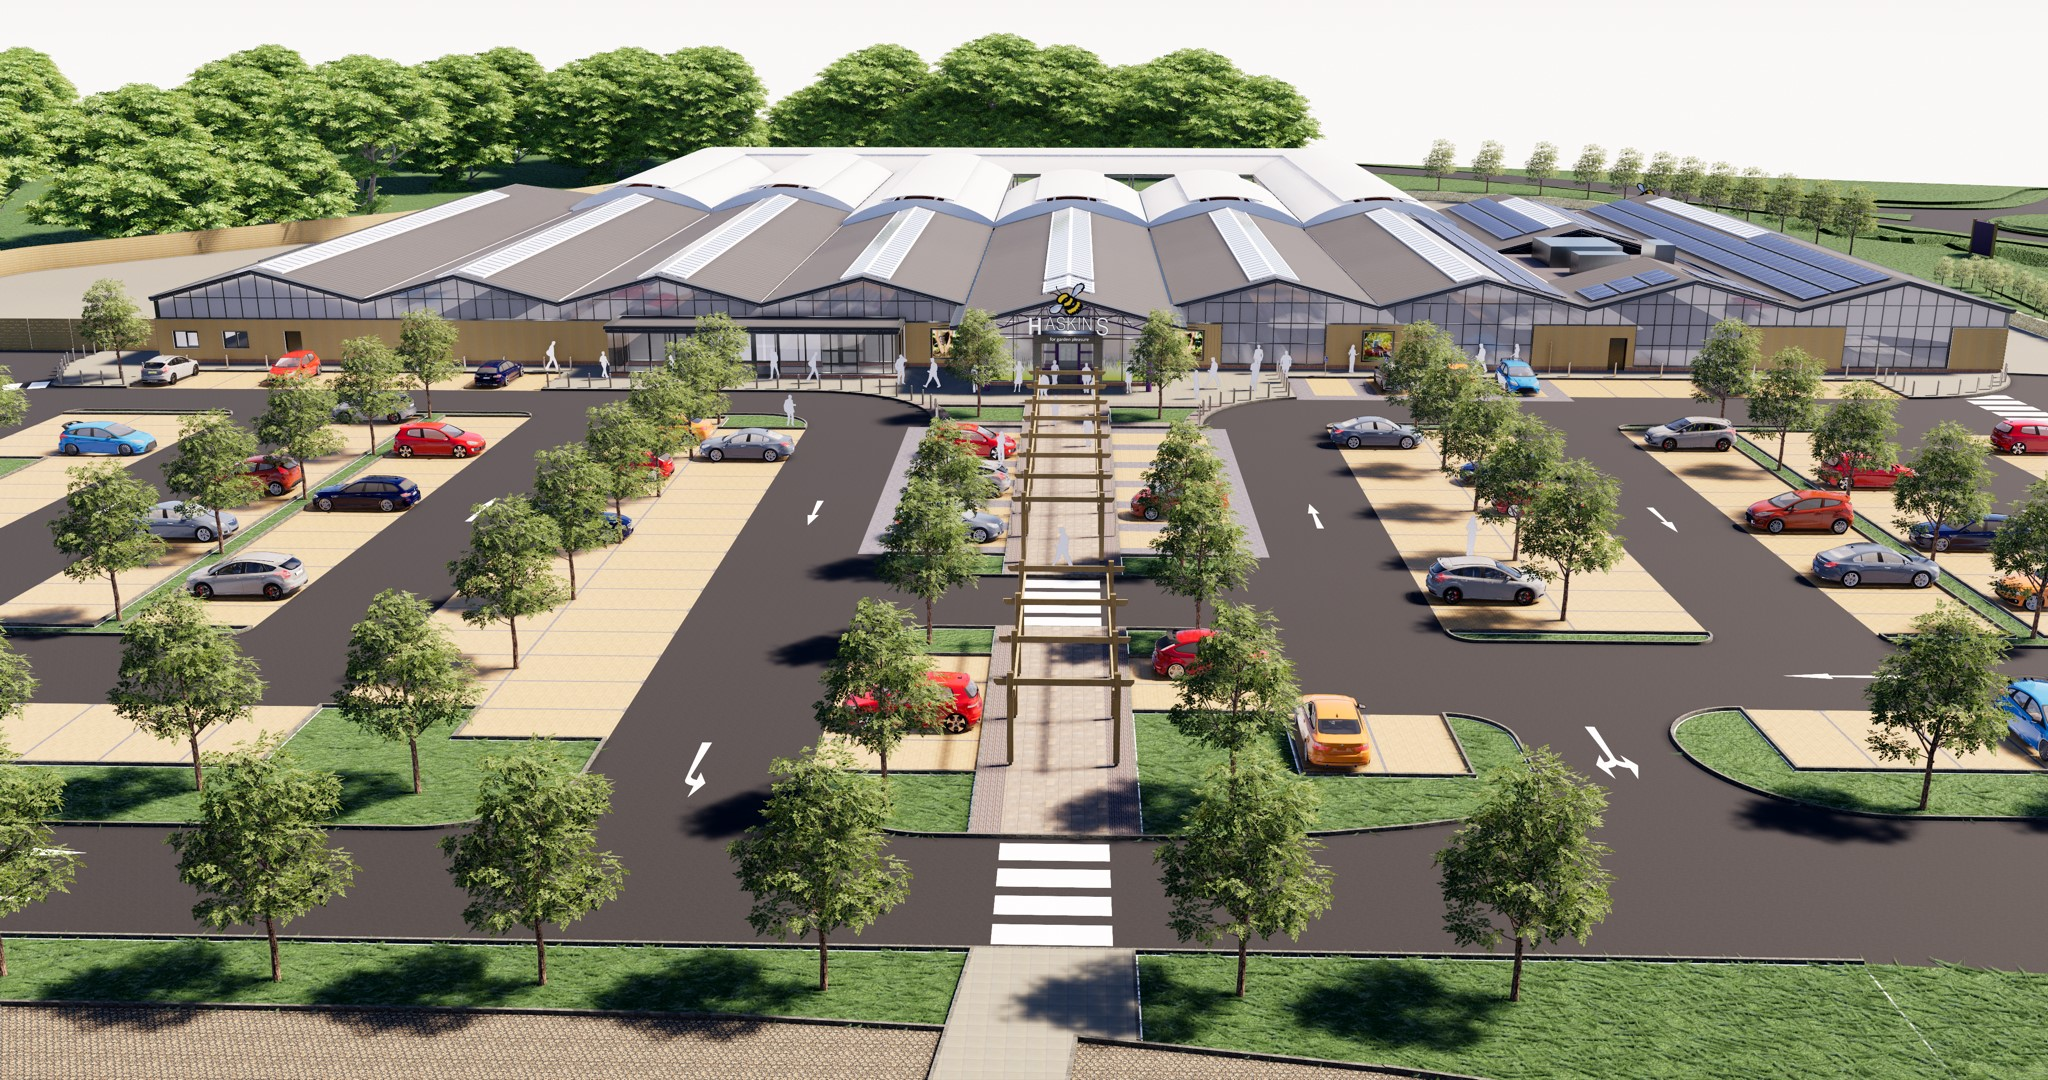 Haskins Garden Centre in Snowhill unveils plans for redevelopment - artist impression